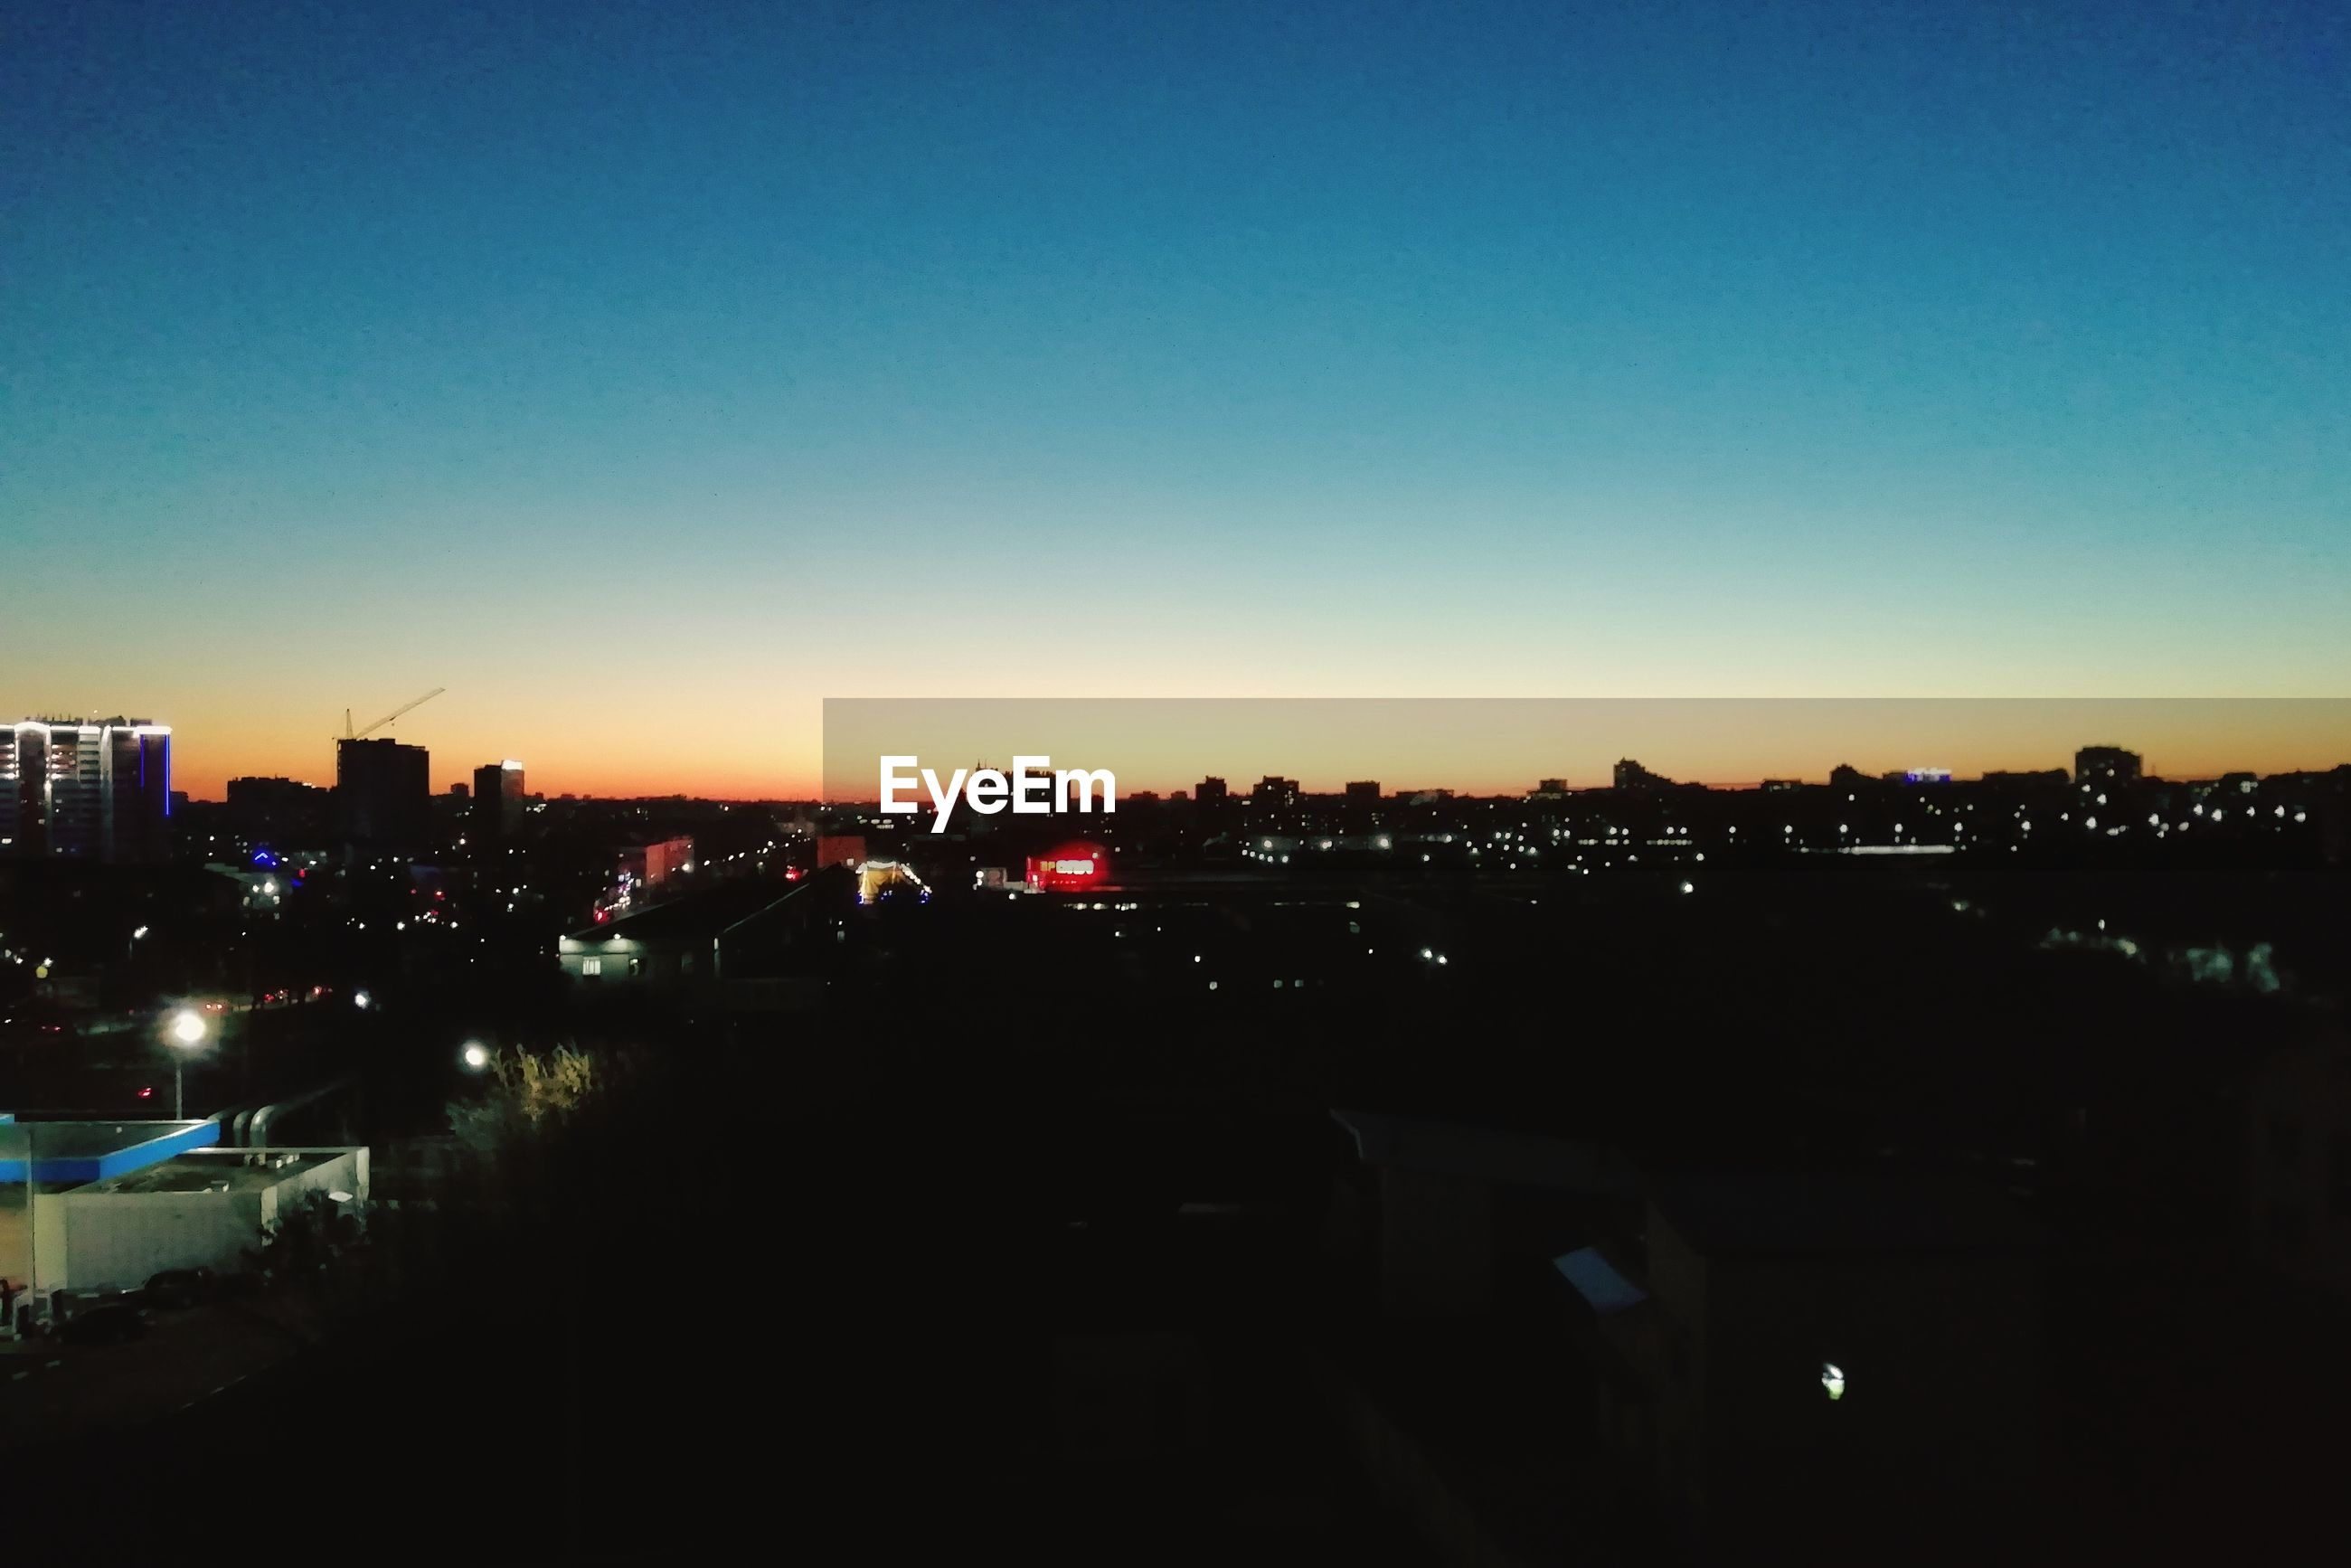 sky, building exterior, architecture, city, built structure, illuminated, copy space, no people, cityscape, sunset, nature, silhouette, clear sky, building, landscape, outdoors, high angle view, dark, night, residential district